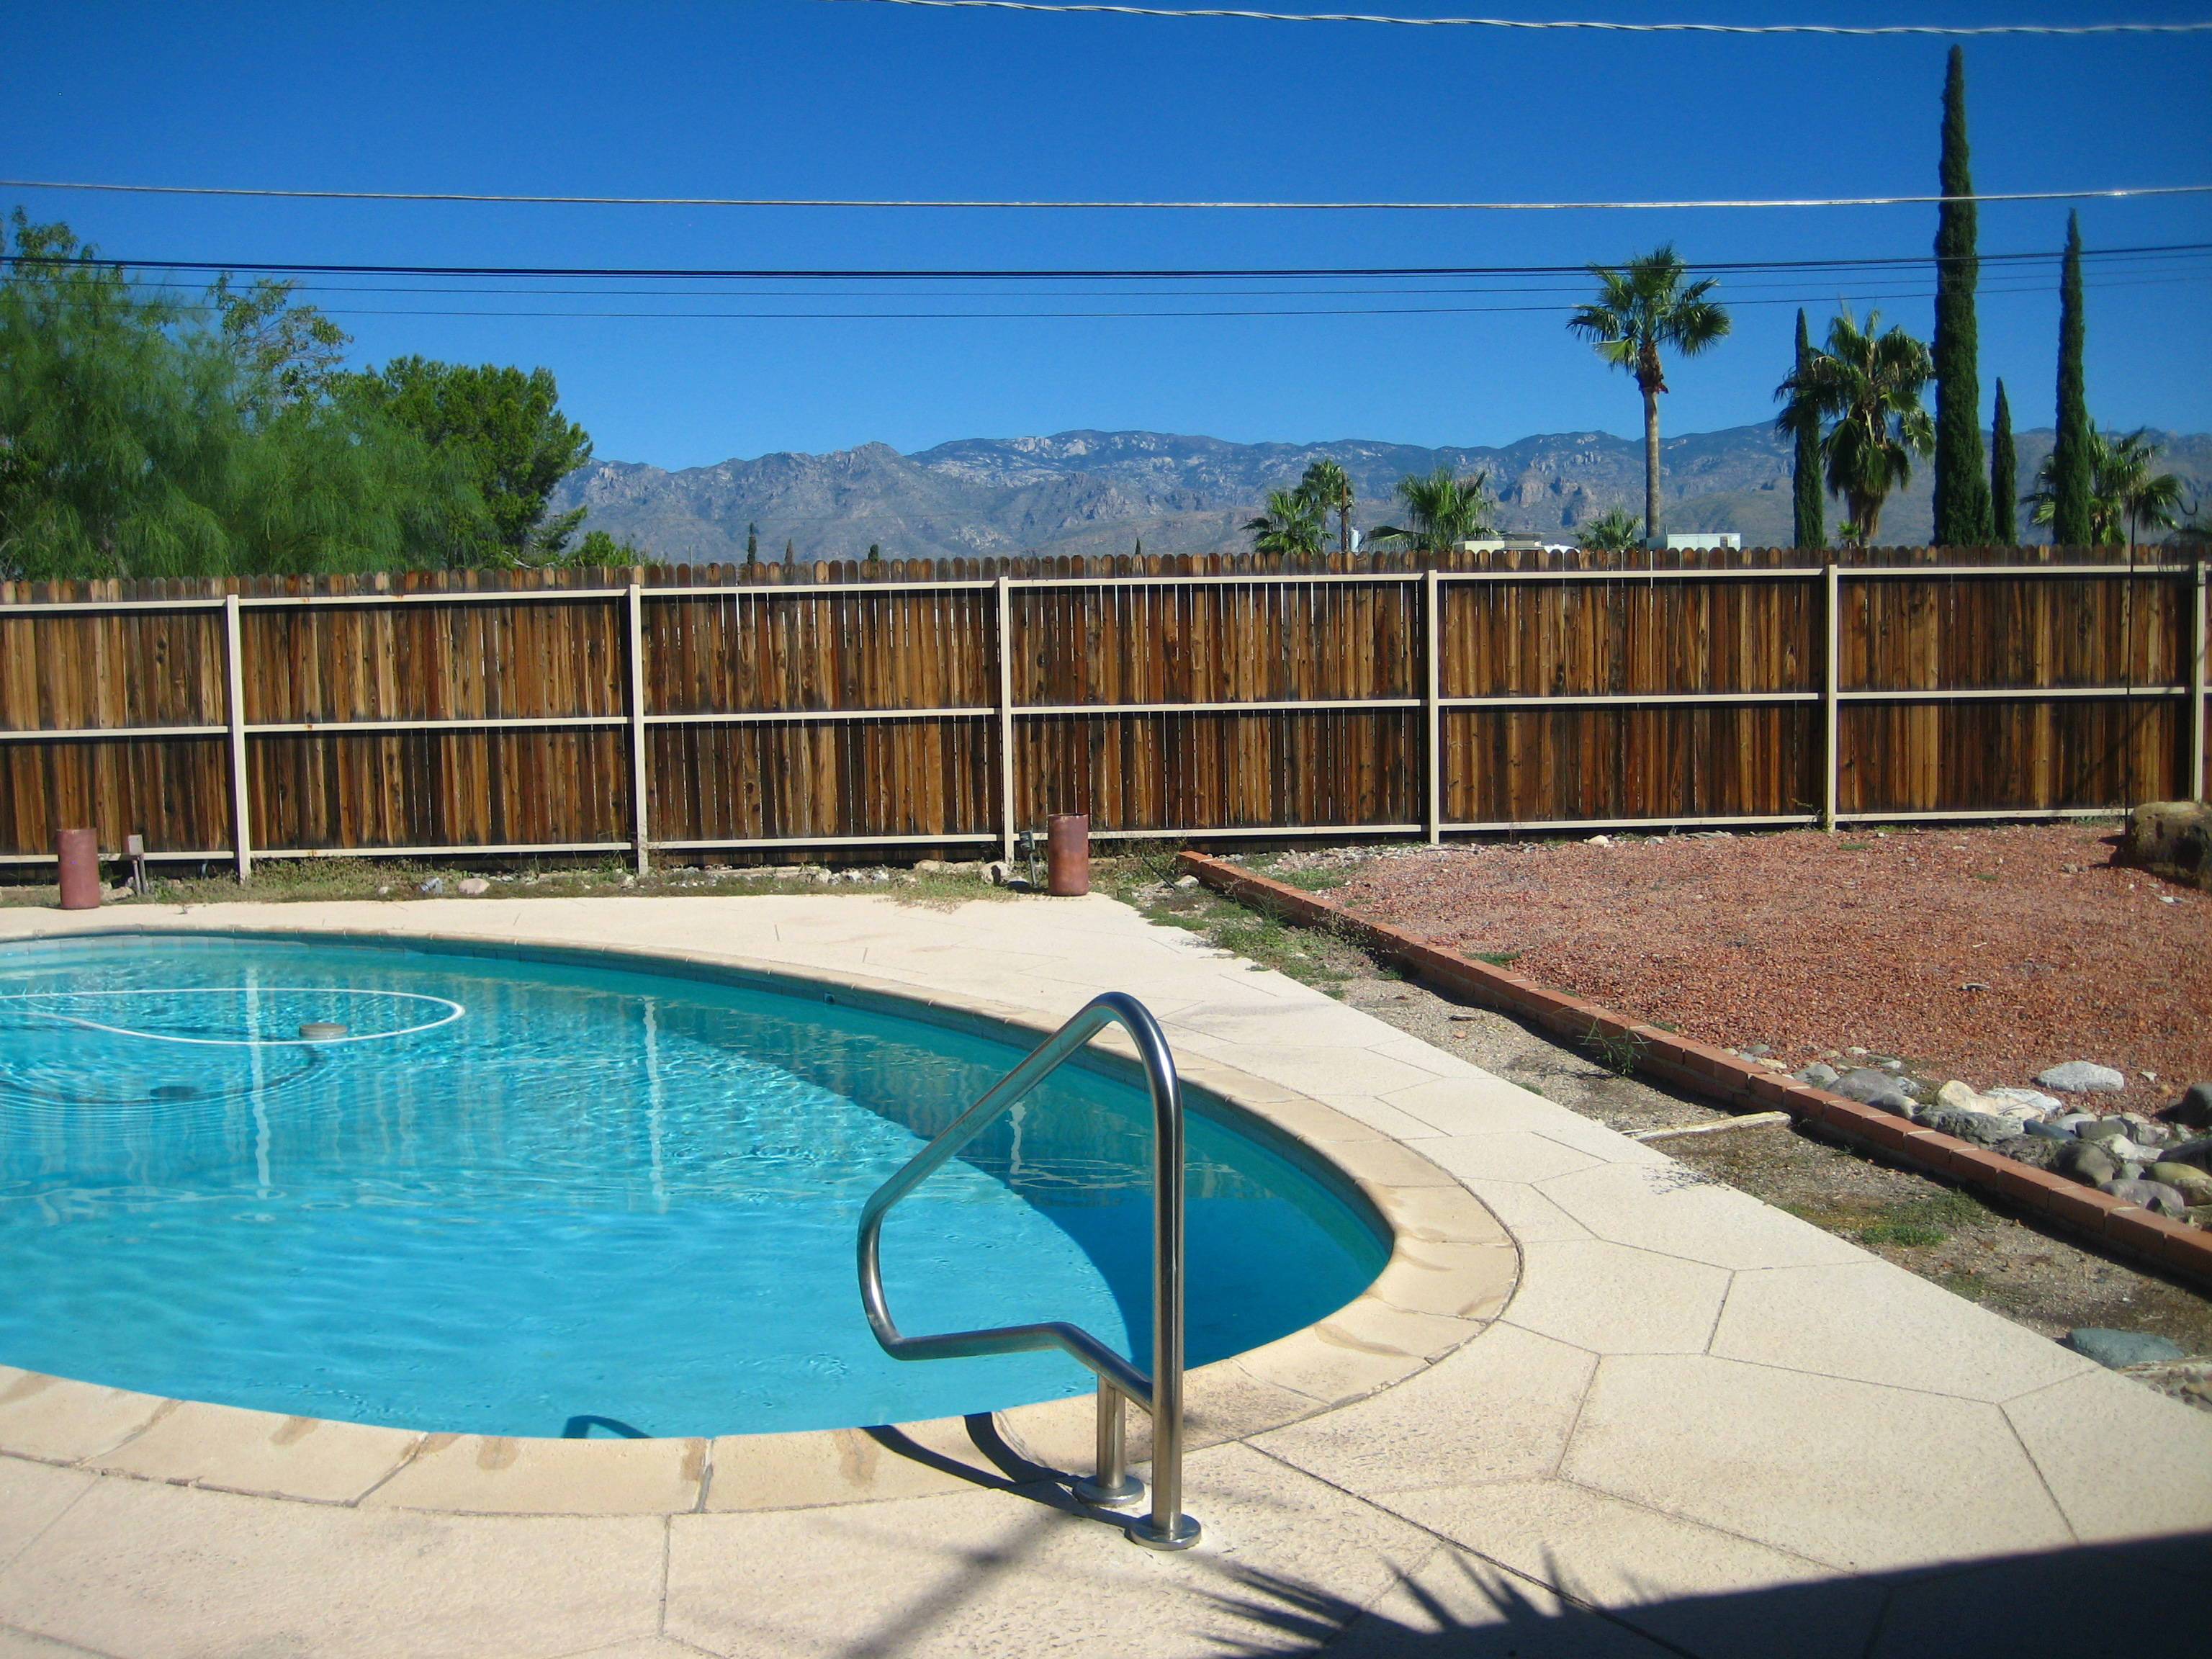 3 bedroom East Tucson home for sale with pool